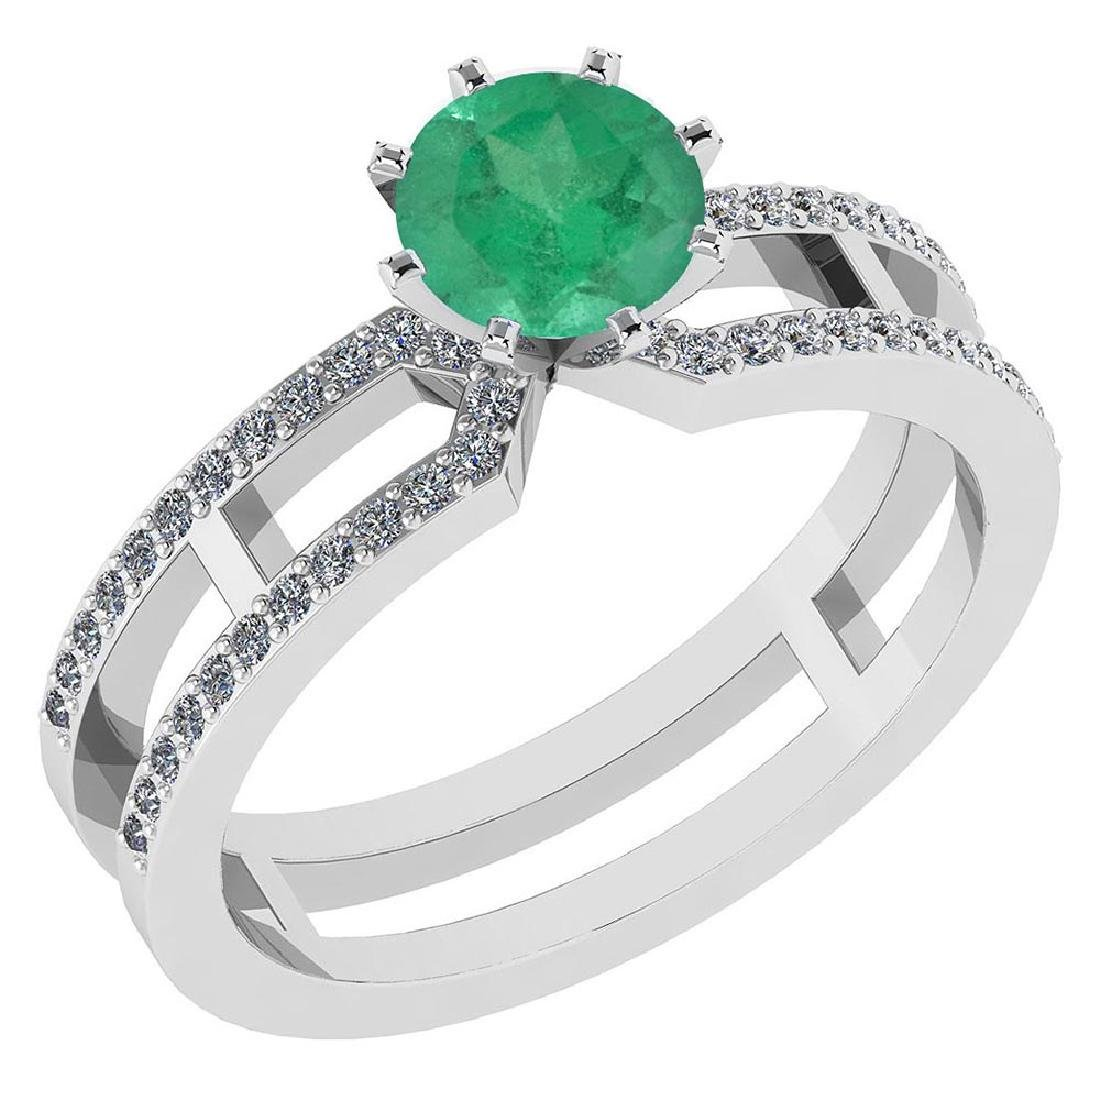 Certified 1.32 Ctw Genuine Emerald And Diamond 14k Whit